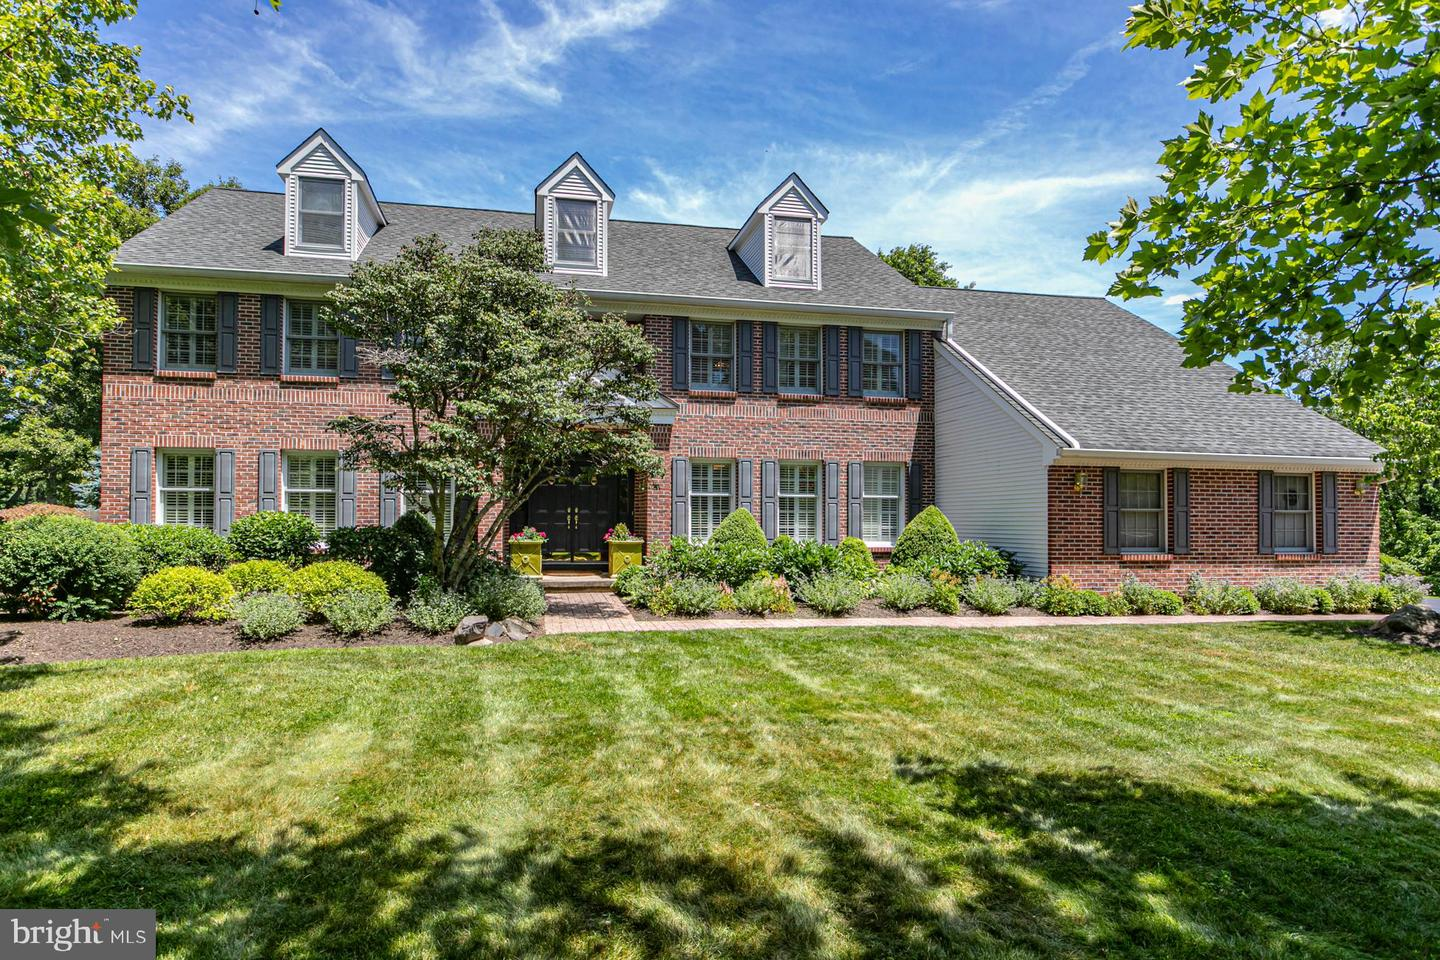 2 OLD BRIDLE PATH, LAWRENCEVILLE, NJ 08648